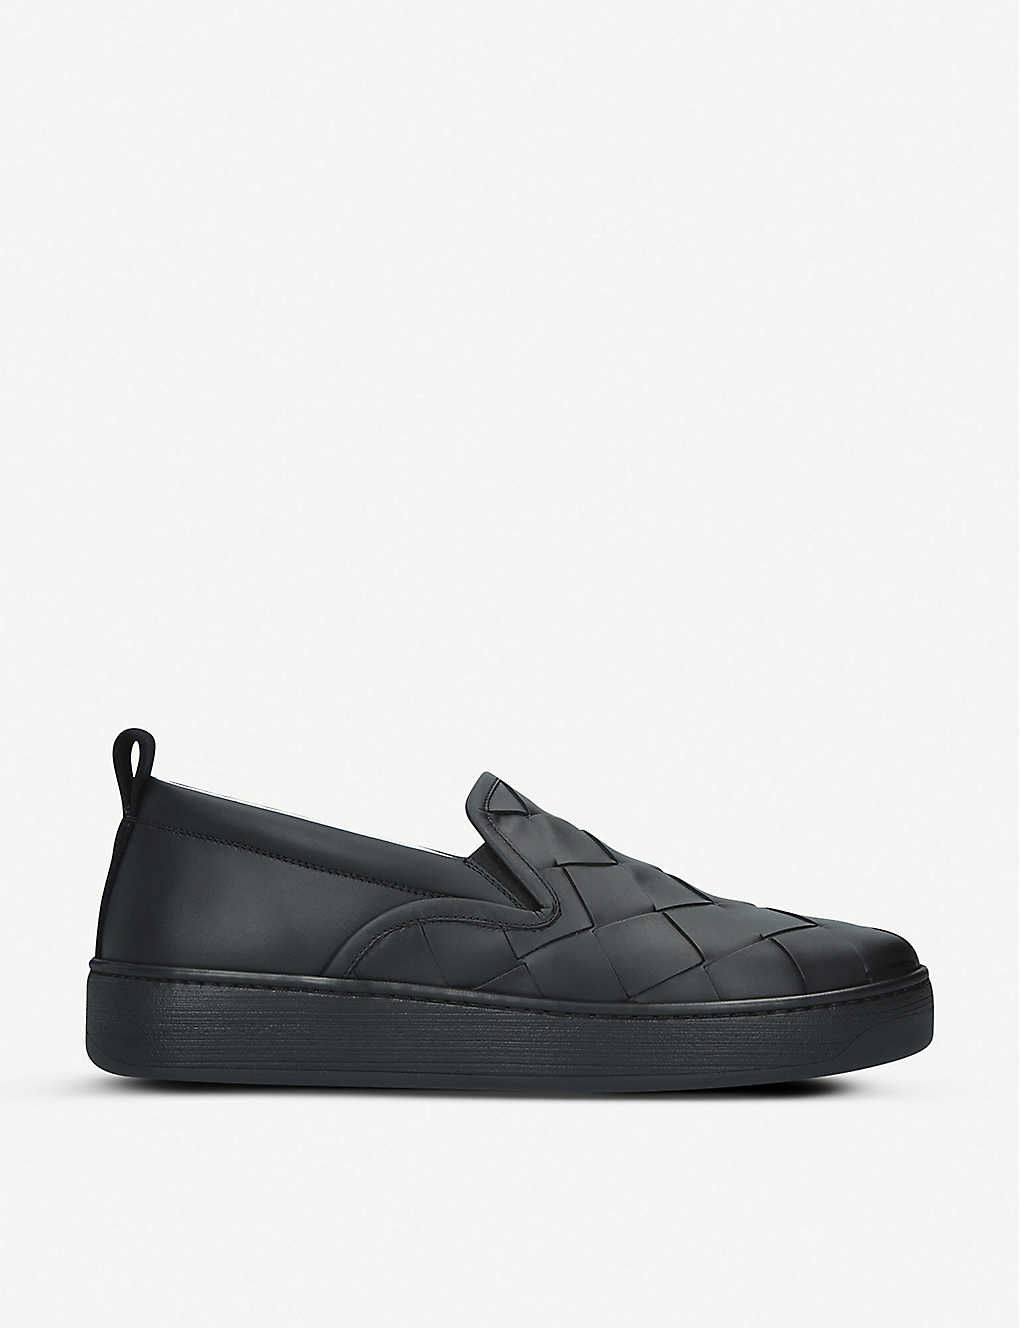 BOTTEGA VENETA: Dodger leather skate shoes